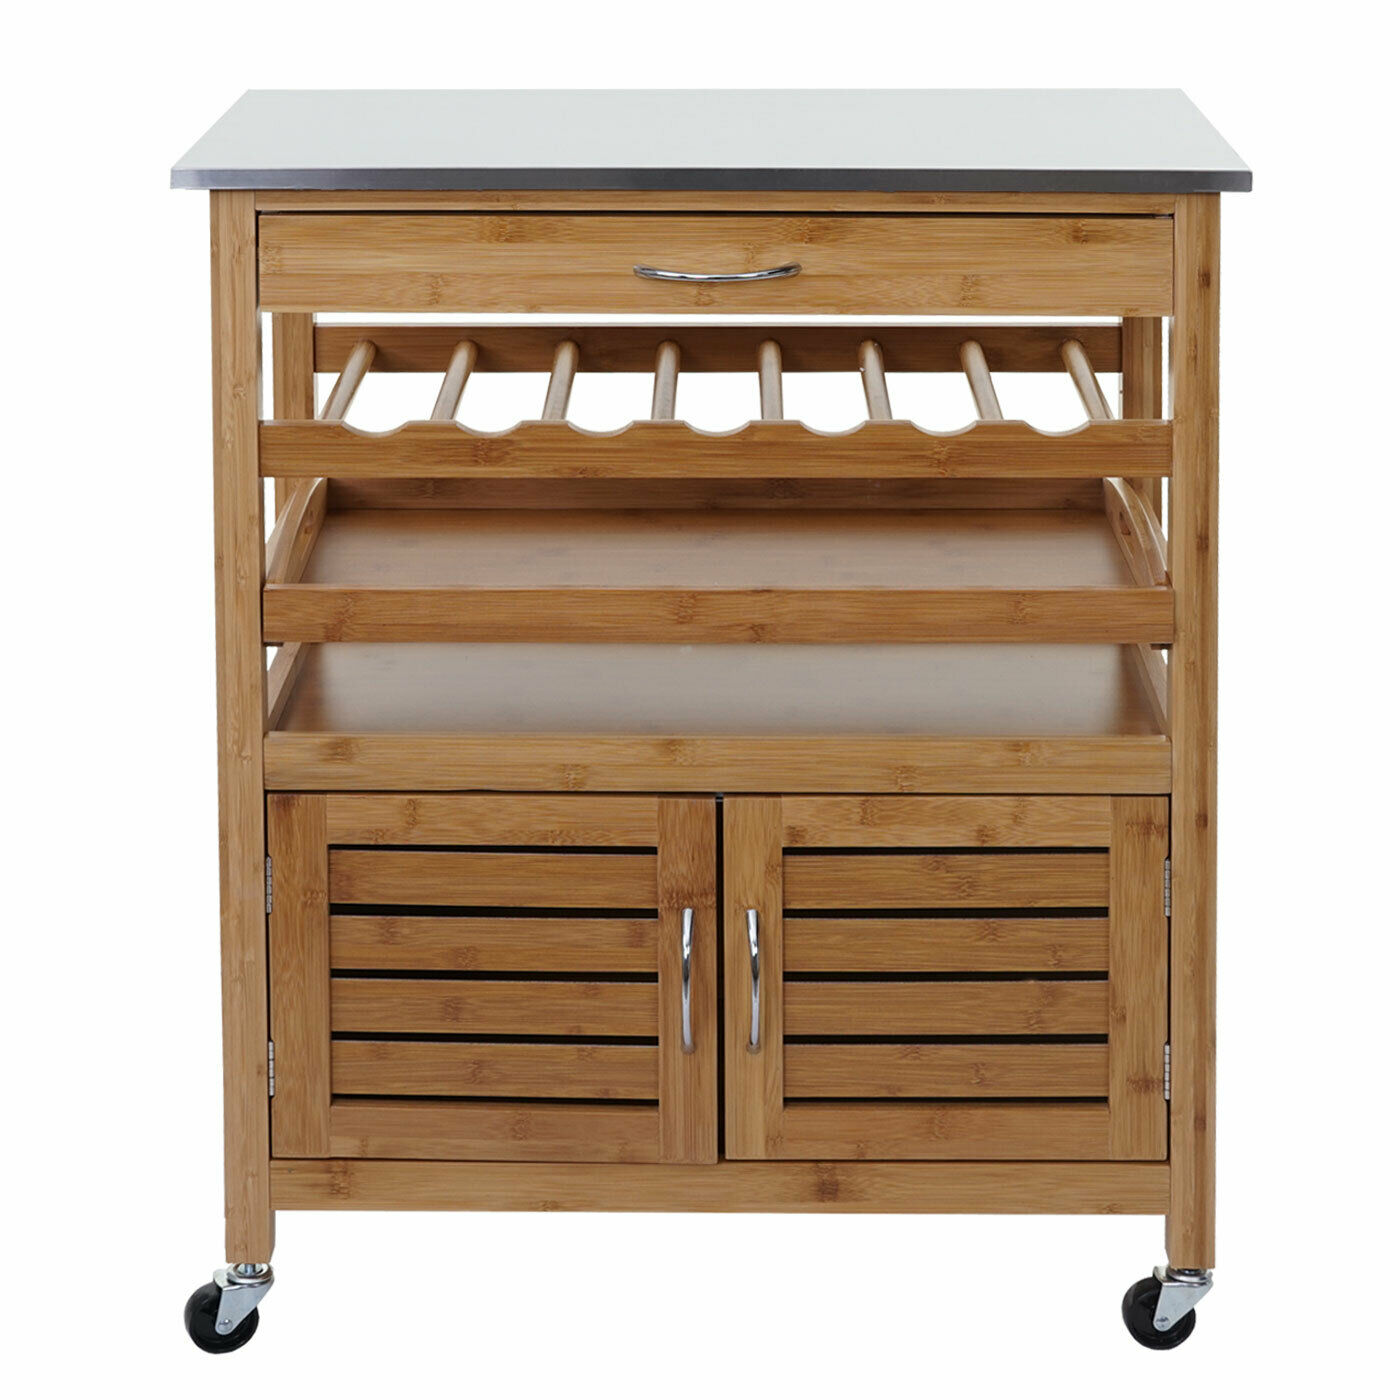 Trolley mcw-d15, Bar Kitchen Helper, Bamboo Stainless Steel Plate 89x70x37cm